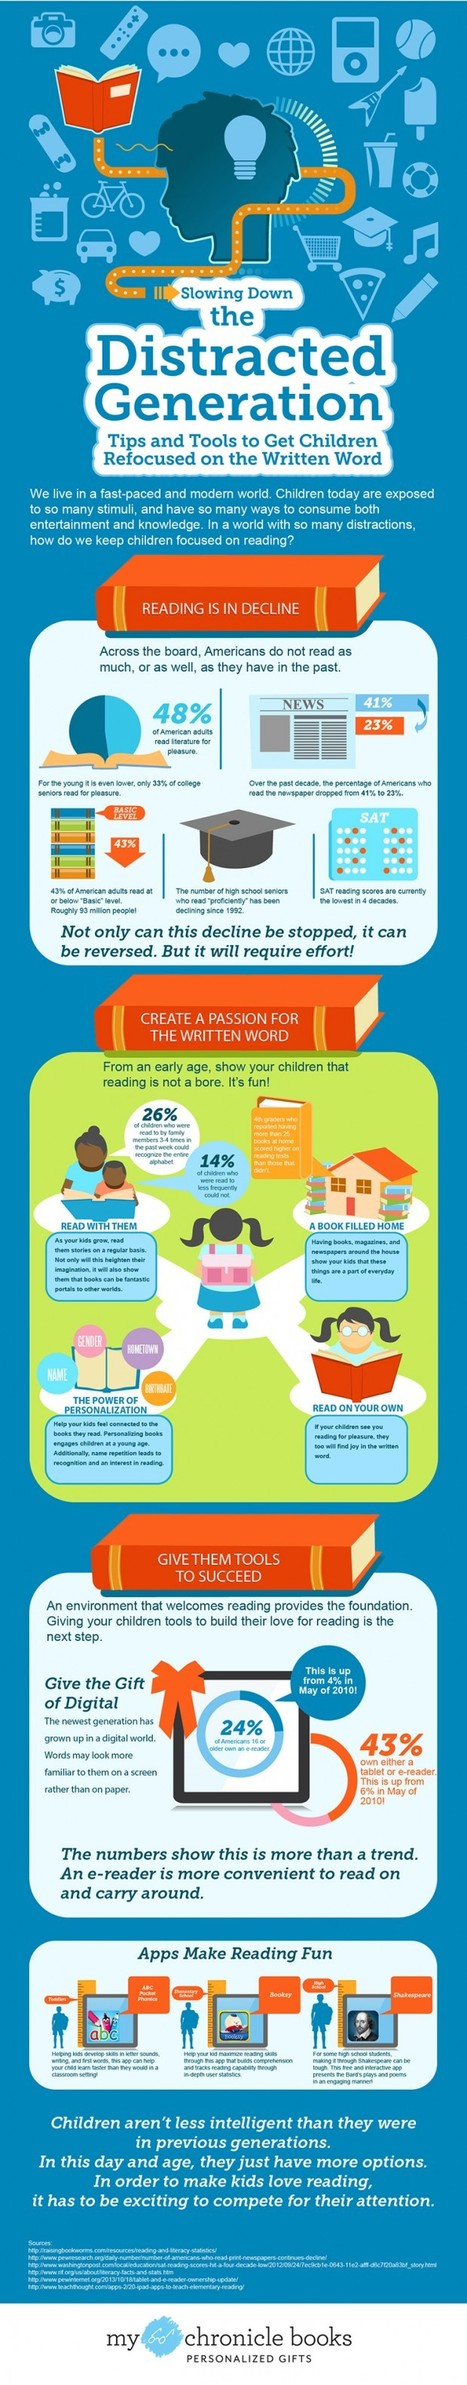 A Visual Guide To Slowing Down The Distracted Generation (Infographic) | TNT - Terra Nova Transmedia | Scoop.it